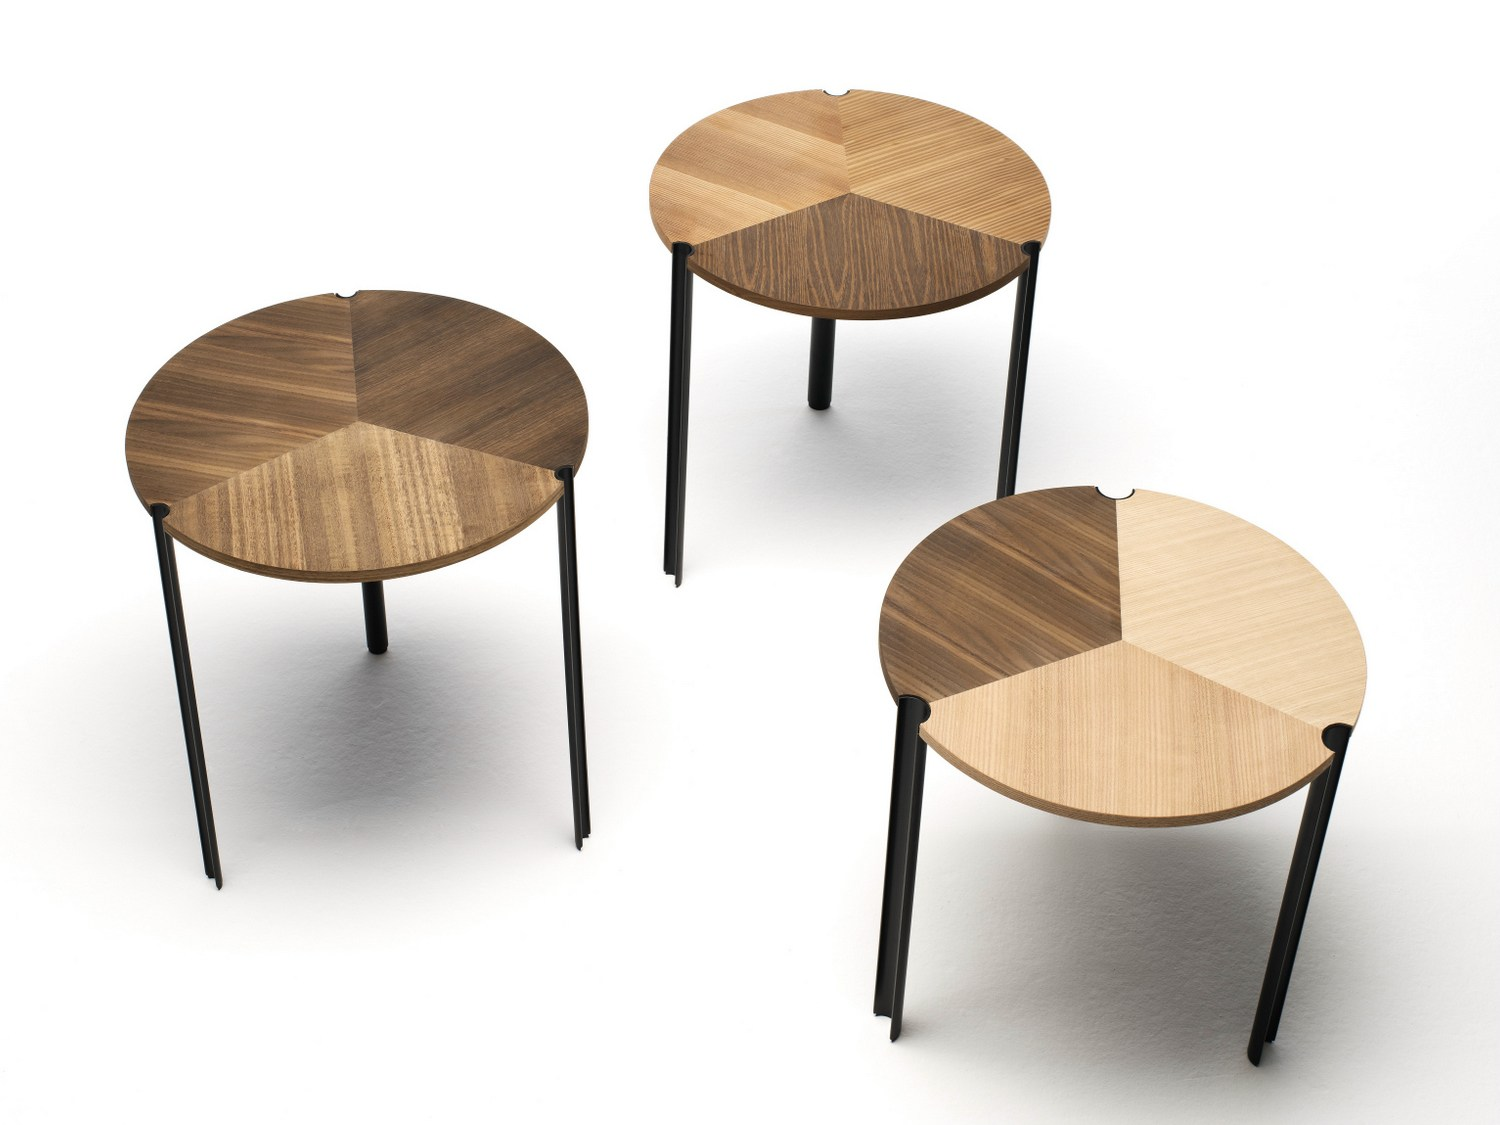 Low Stackable Modular Wooden Coffee Table Starsky By Living Divani Design David Lopez Quincoces